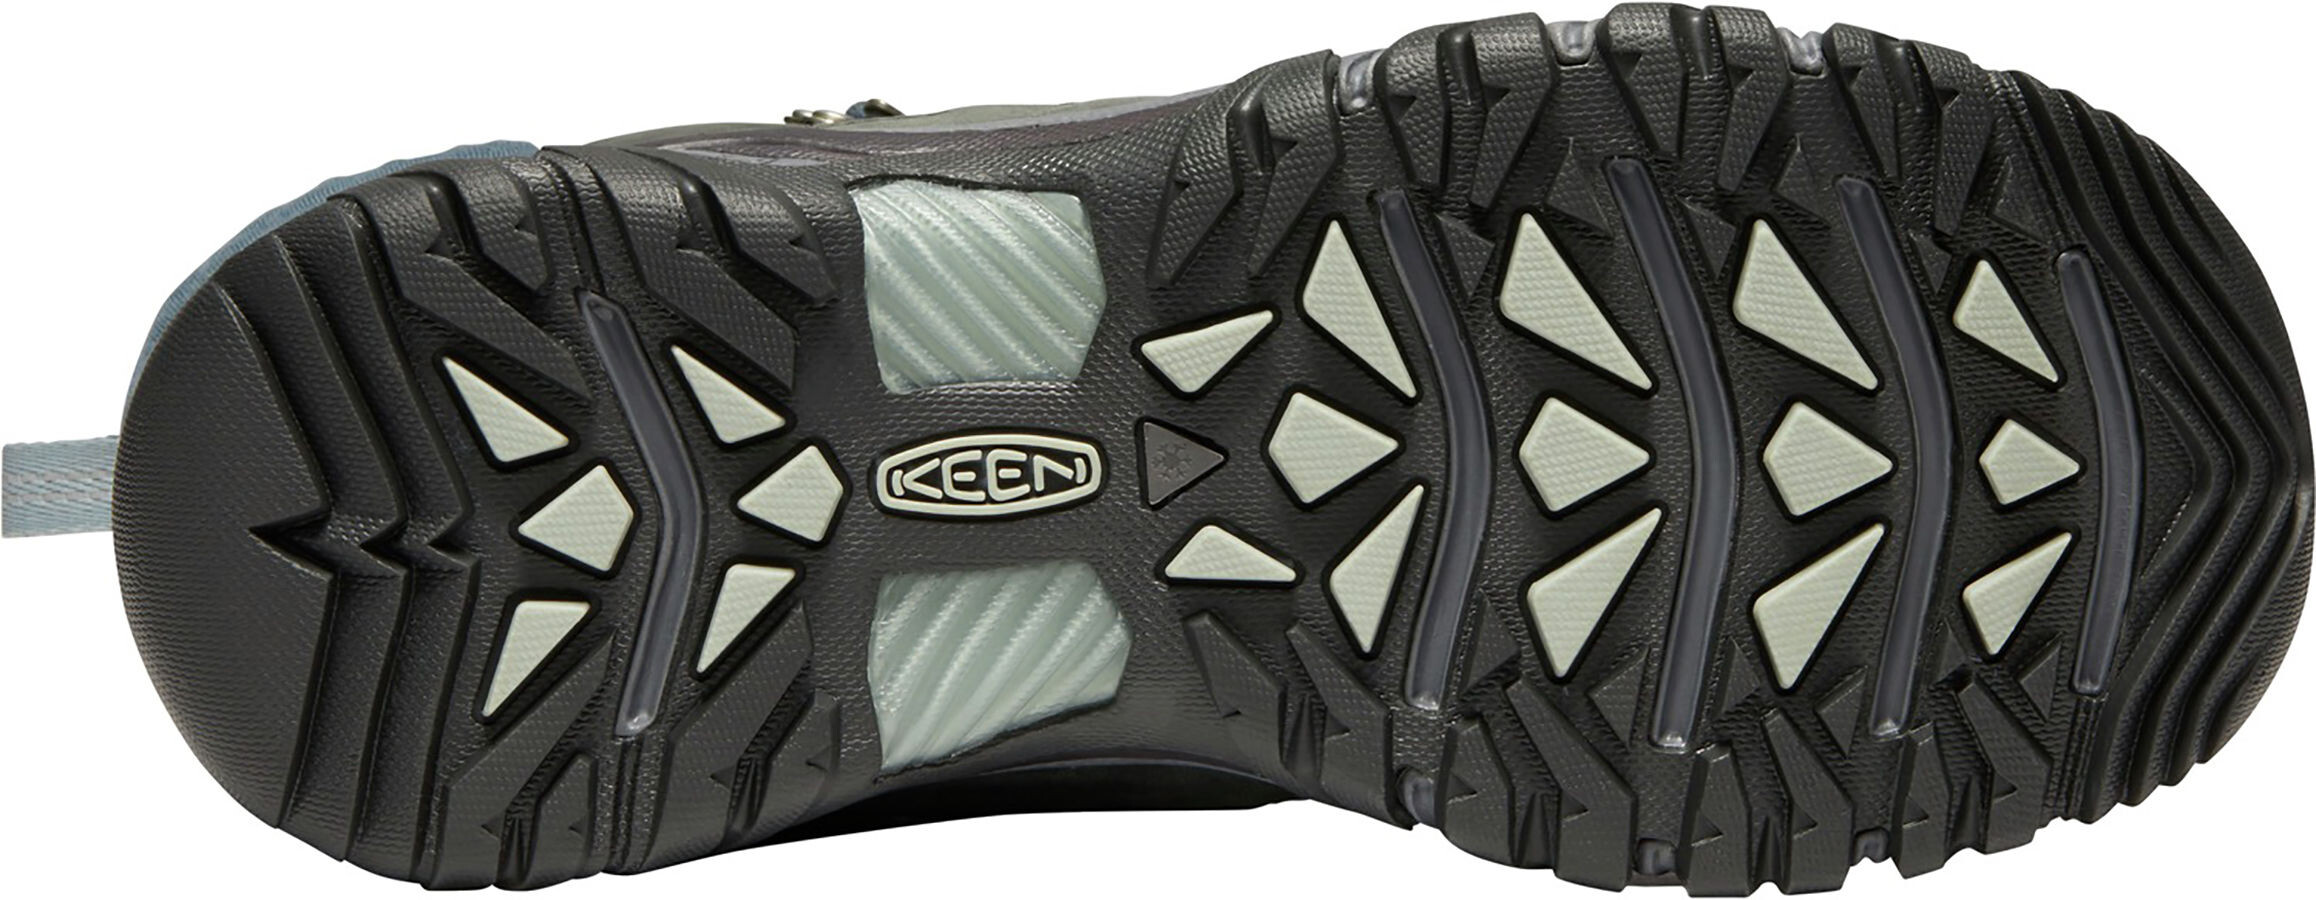 Keen Hoodoo III Lace Up Shoes Women grey at Addnature.co.uk 41611385ed